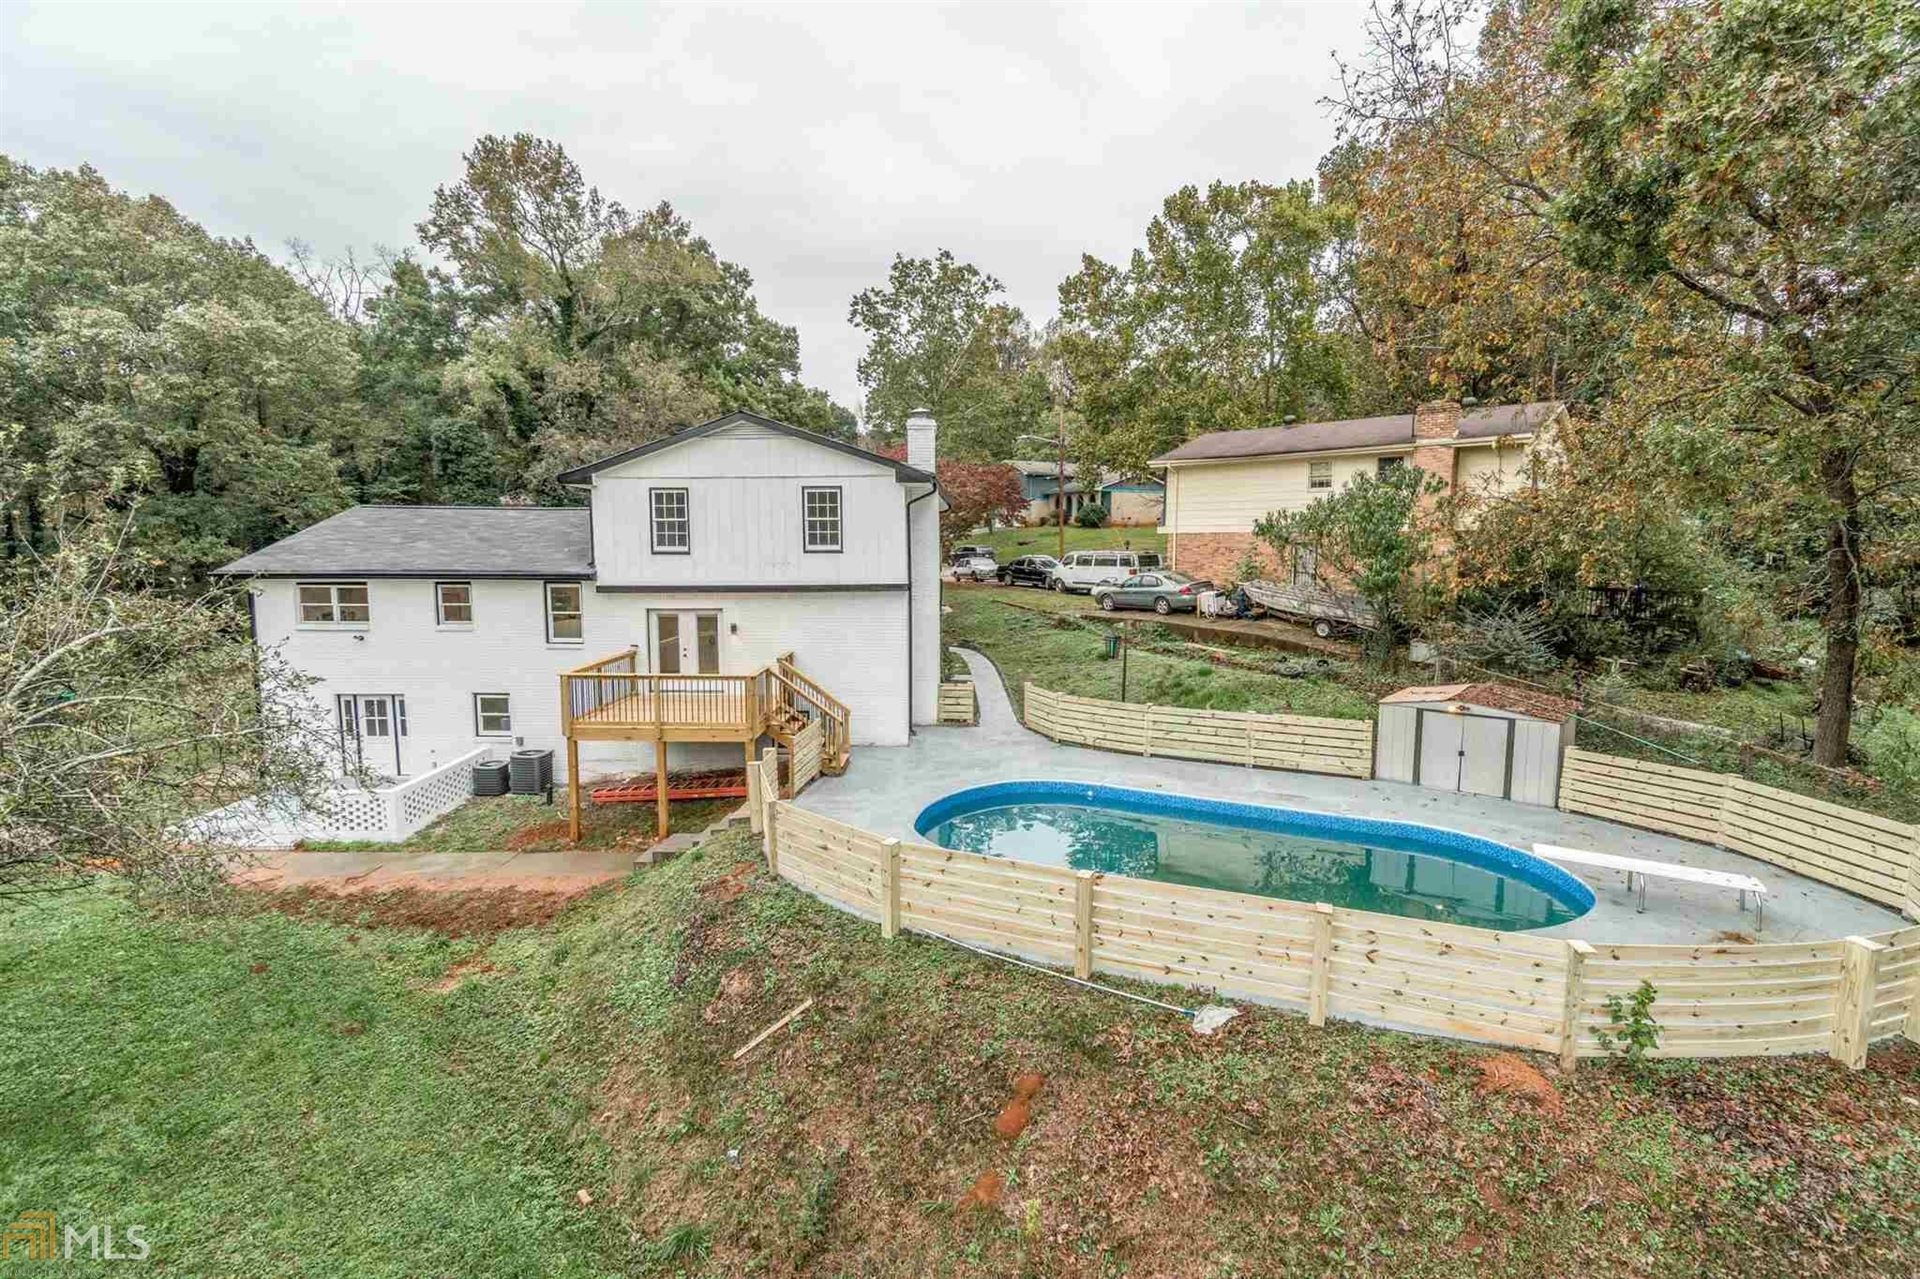 2361 Chevy Chase Ln, Decatur, GA 30032 - #: 8879200